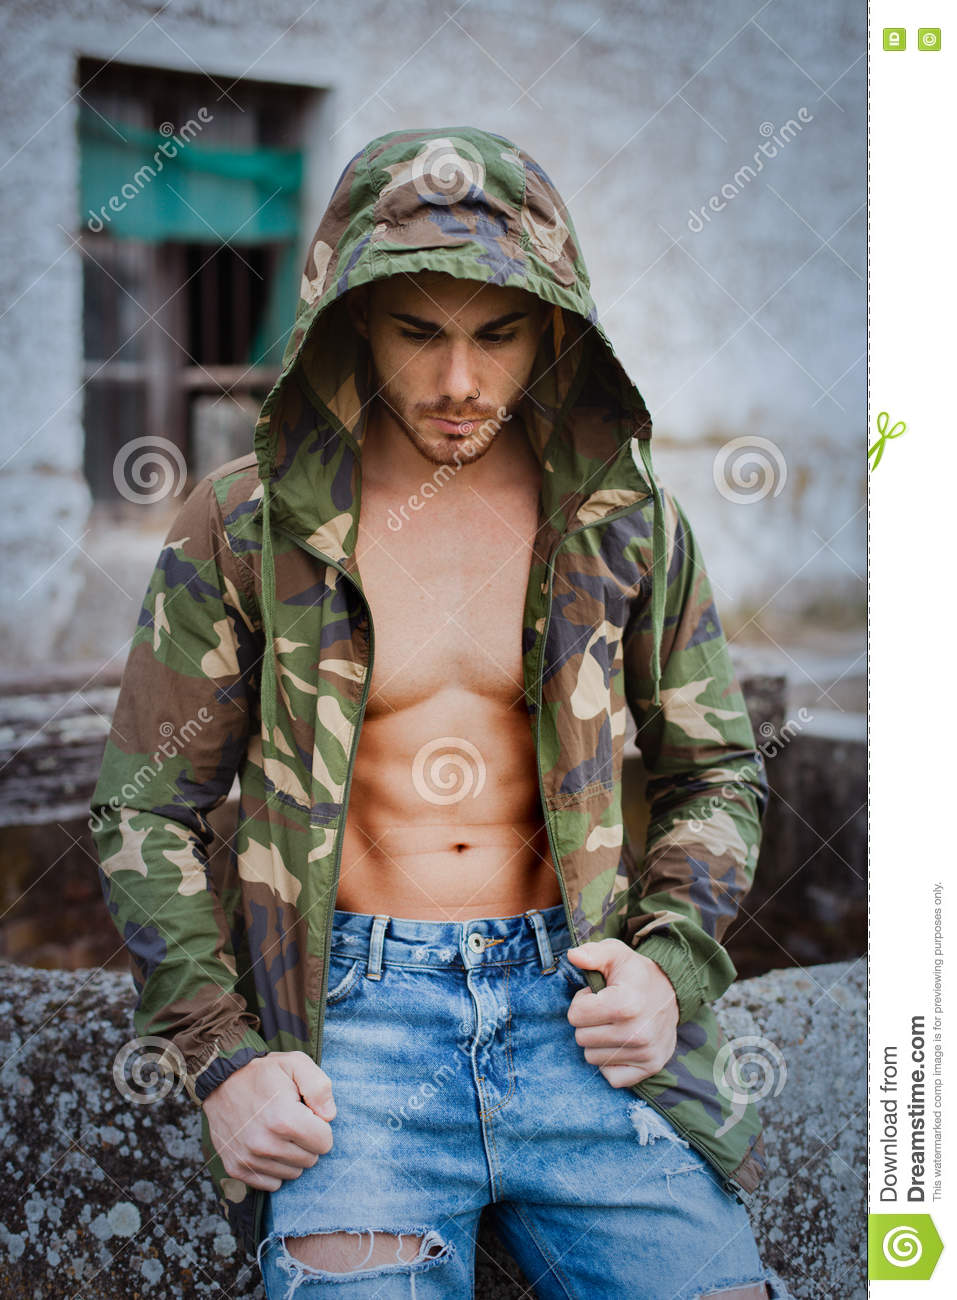 Muscled boy with camouflage jacket